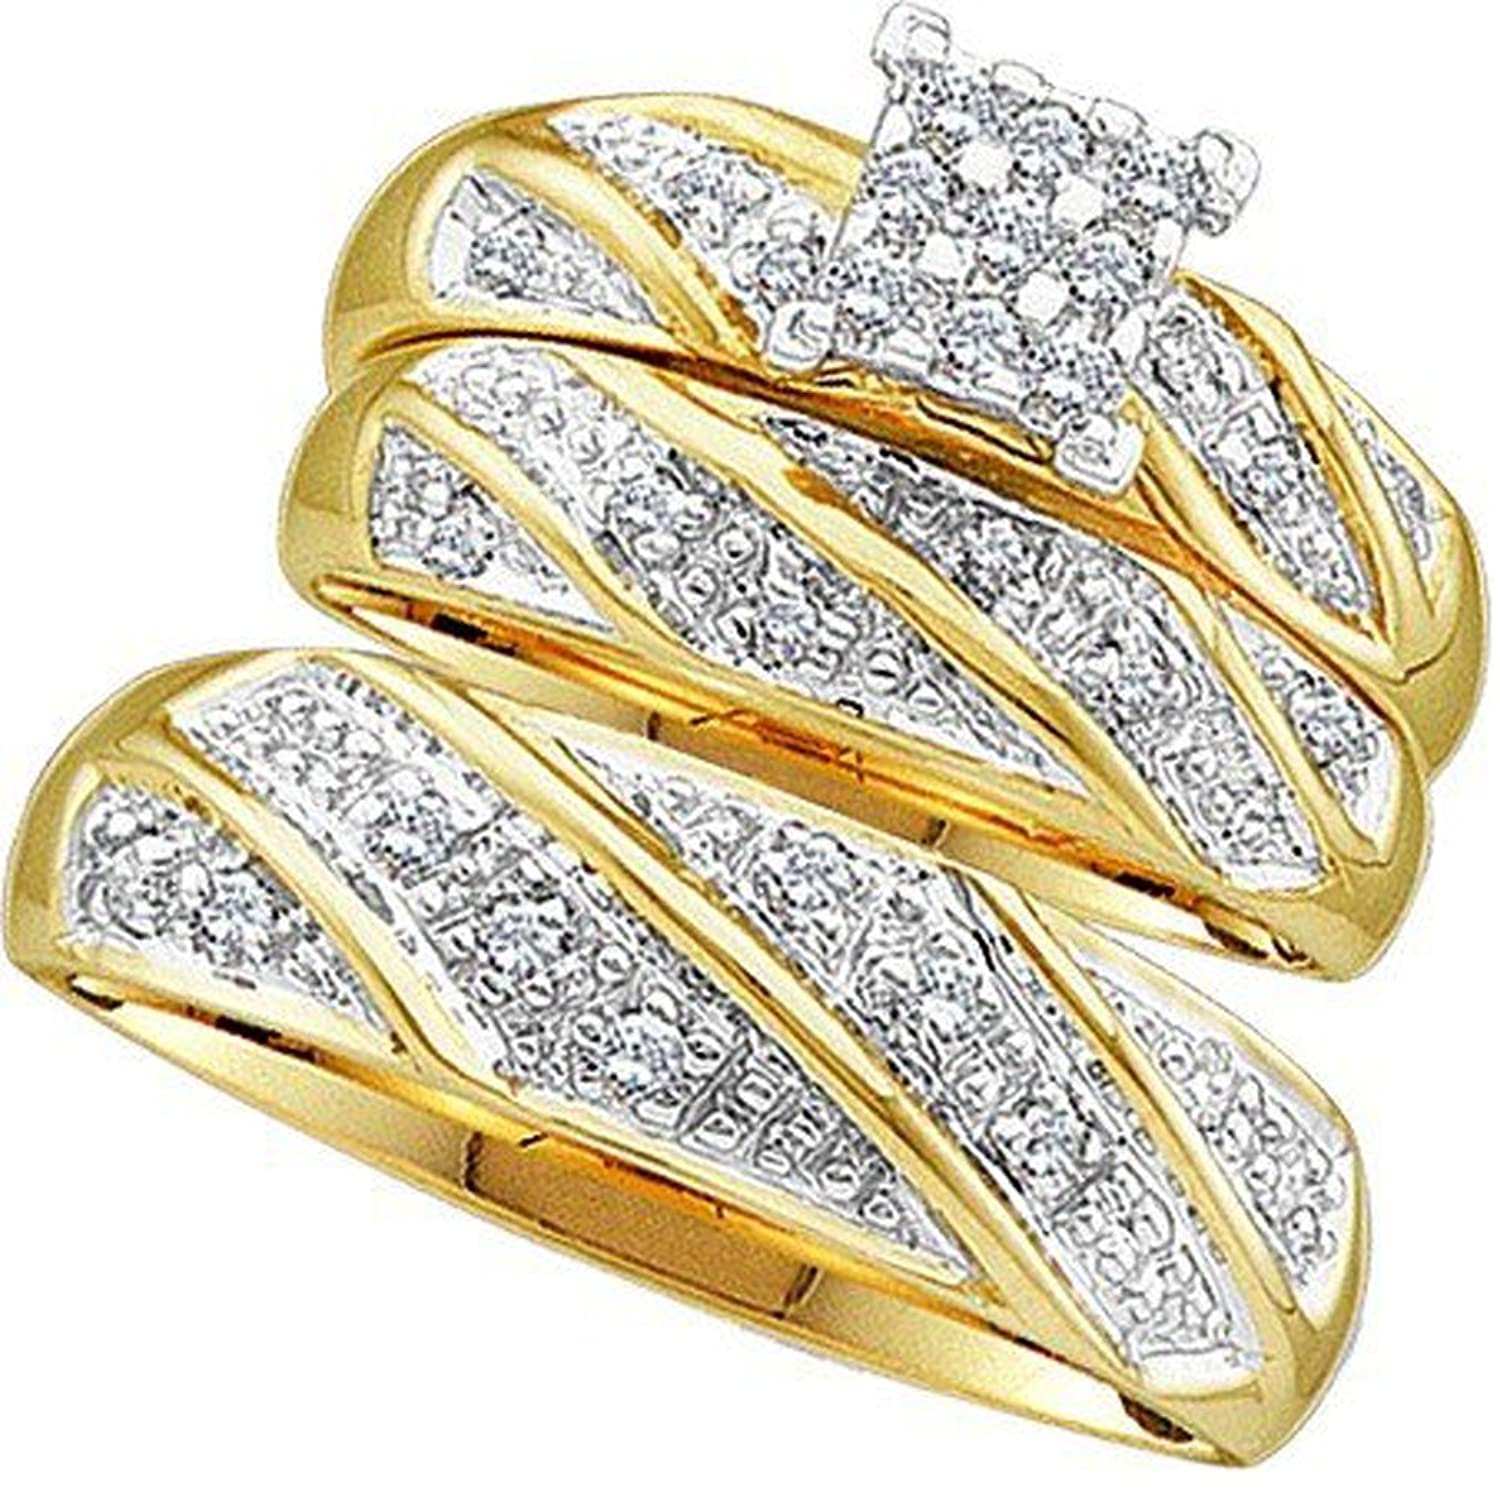 purchase blog gold you a ring diamond rose should rings engagement guide the ultimate